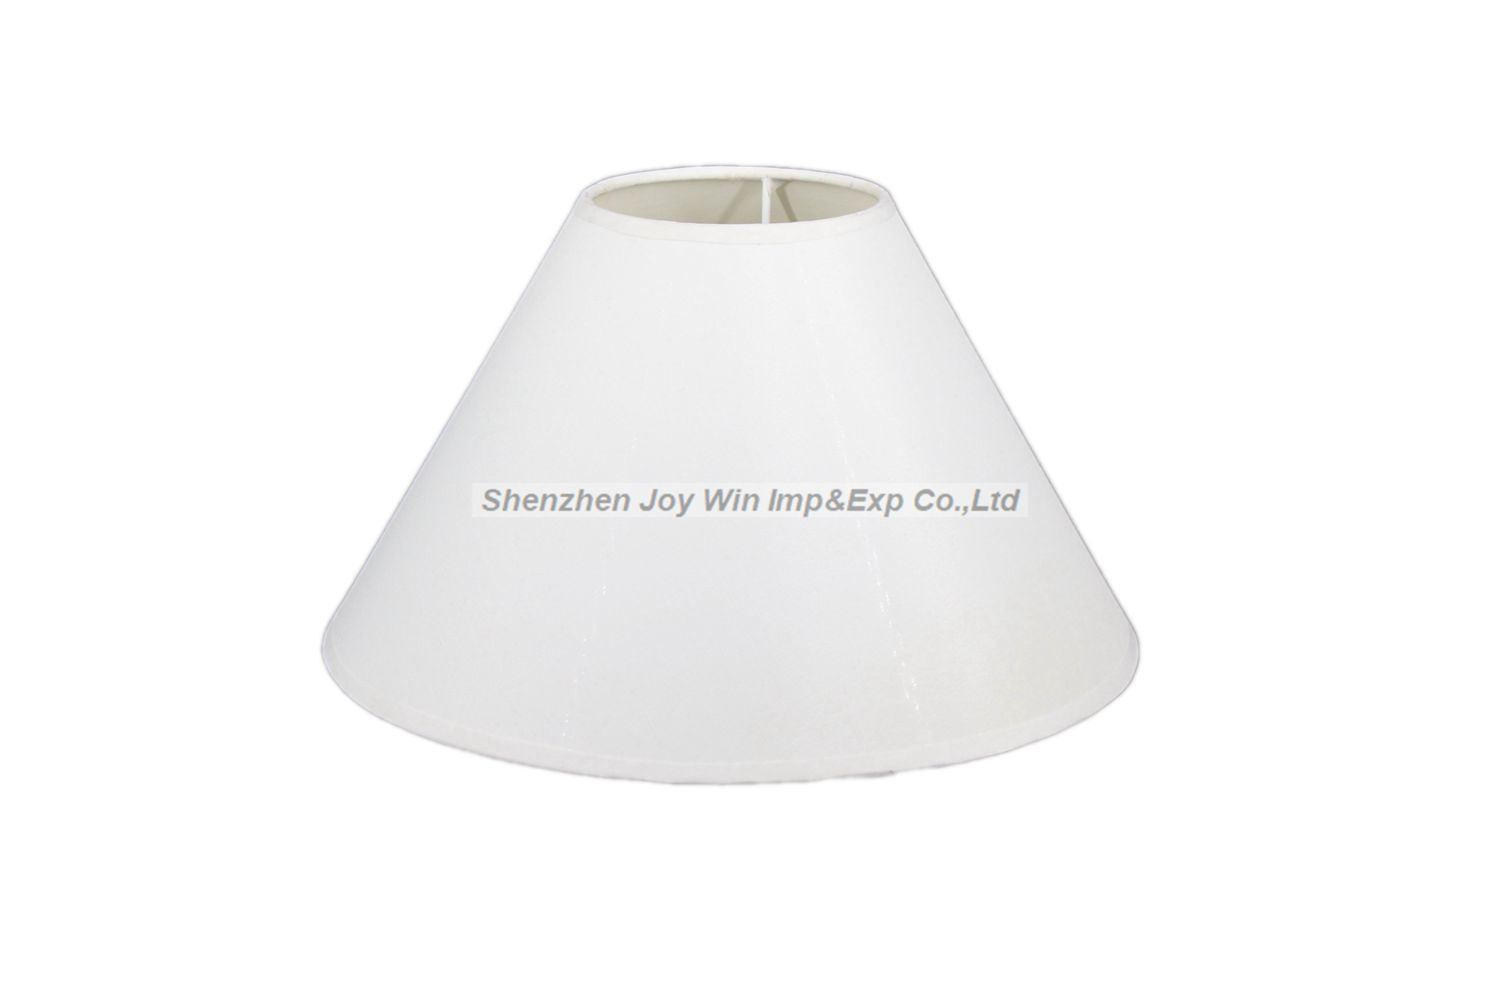 China Lamp Shade, Lamp Shade Manufacturers, Suppliers   Made-in ...